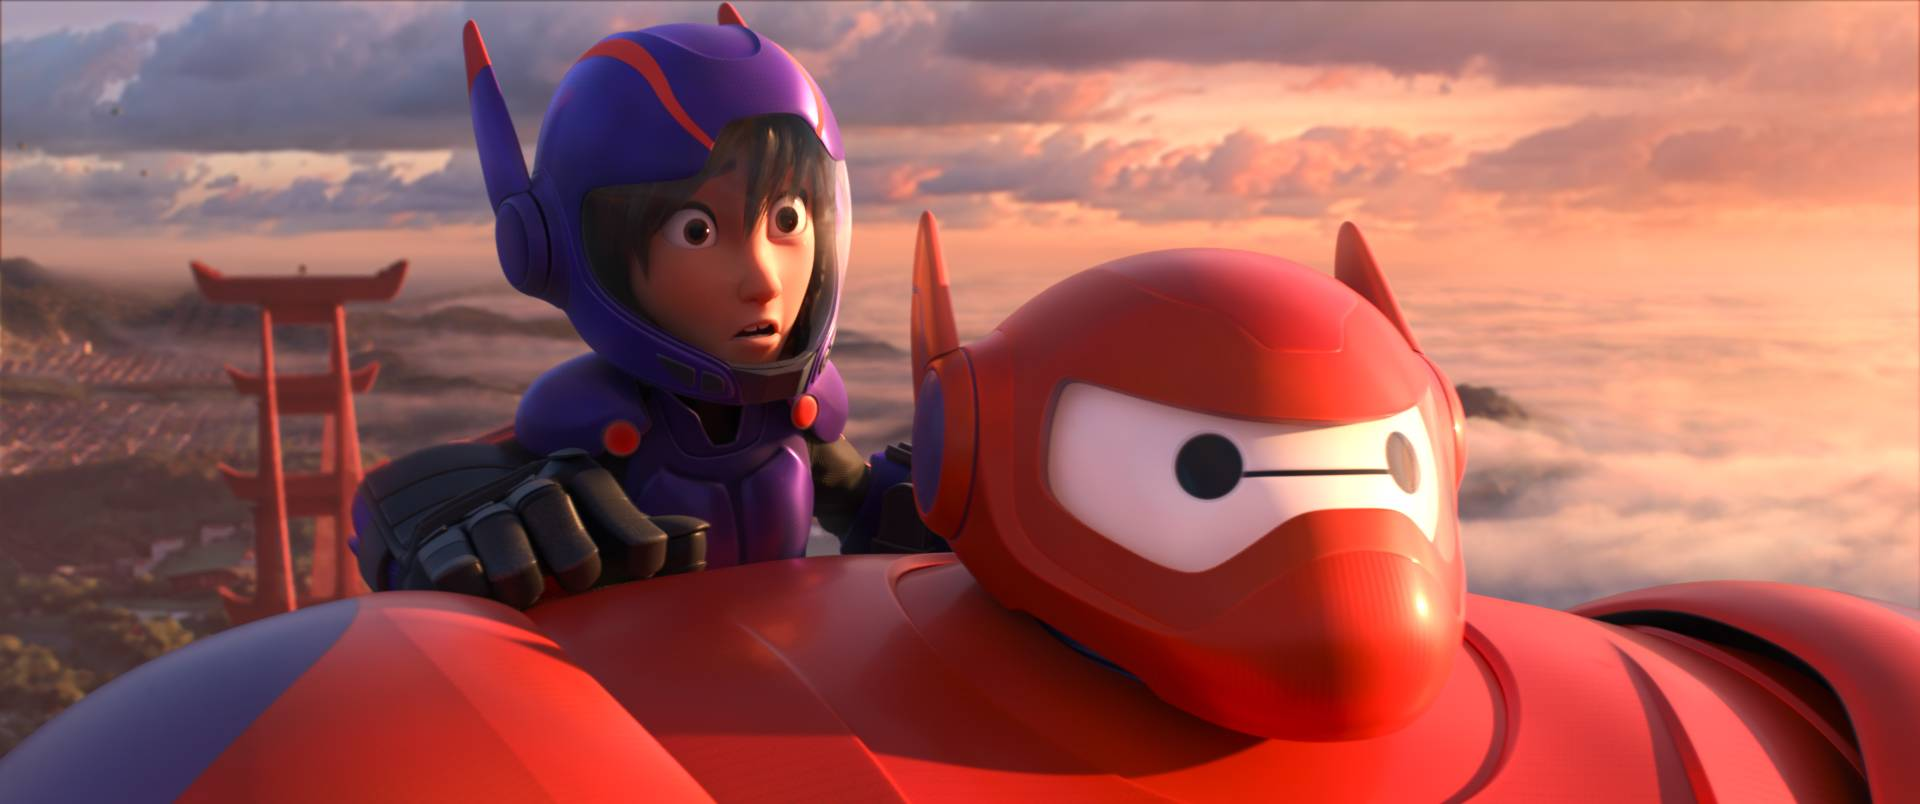 "Animated characters Hiro Hamada, voiced by Ryan Potter, left, and Baymax, voiced by Scott Adsit, in a scene from ""Big Hero 6,"" which debuted at No. 1 at the box office with a $56 million haul."